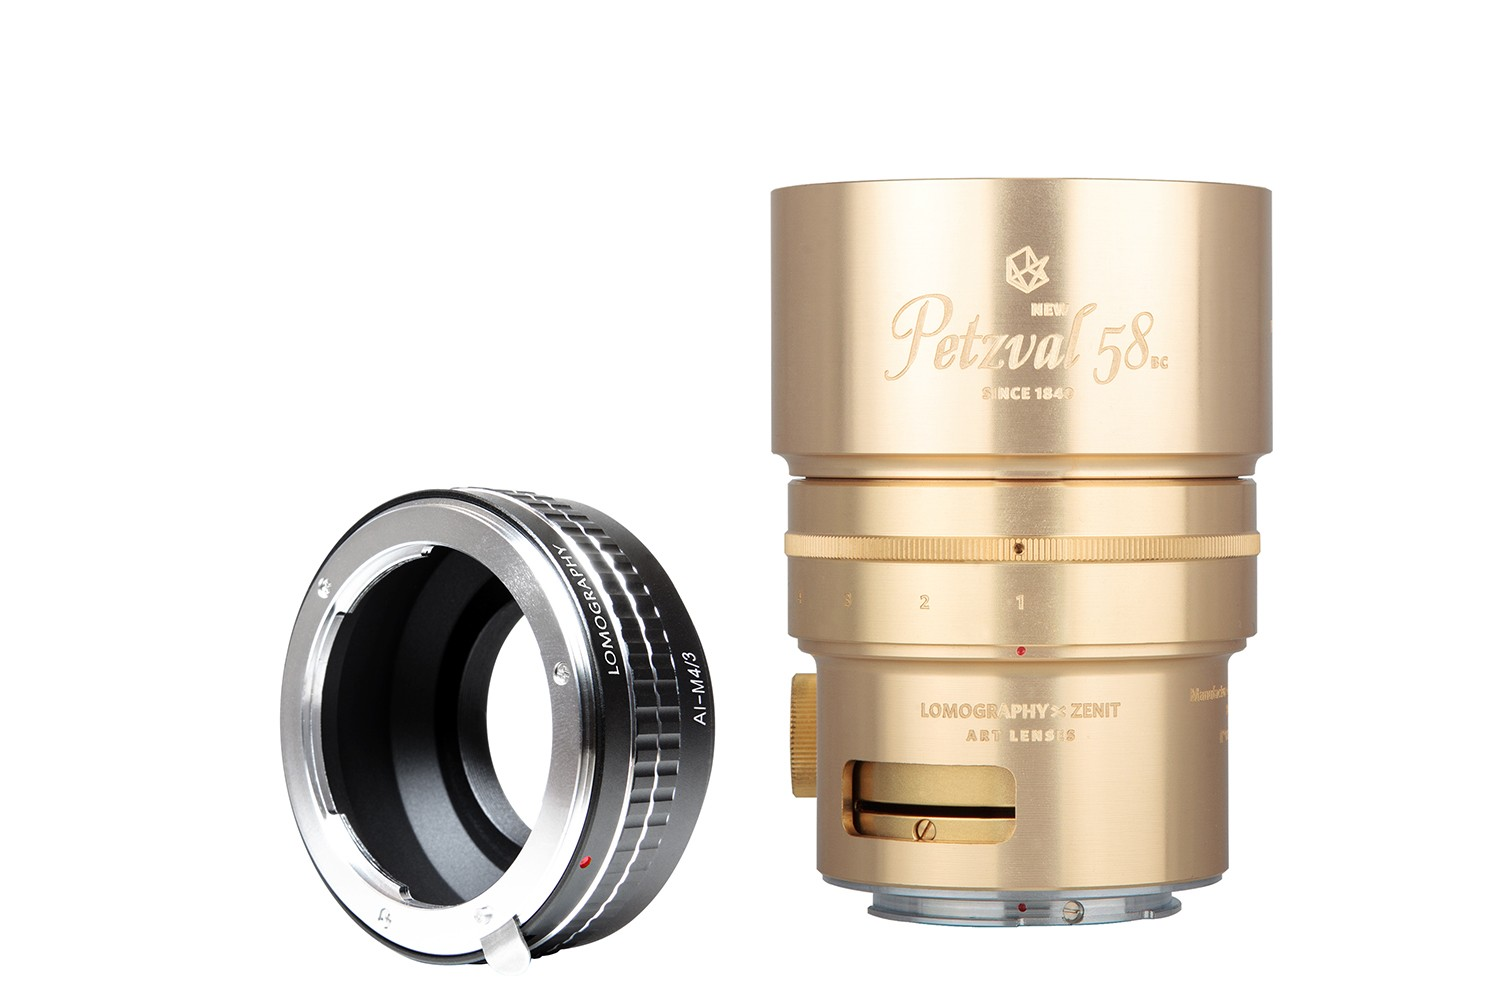 New Petzval 58 Bokeh Control Art Lens Brass - Nikon F Mount with M4/3 Adapter